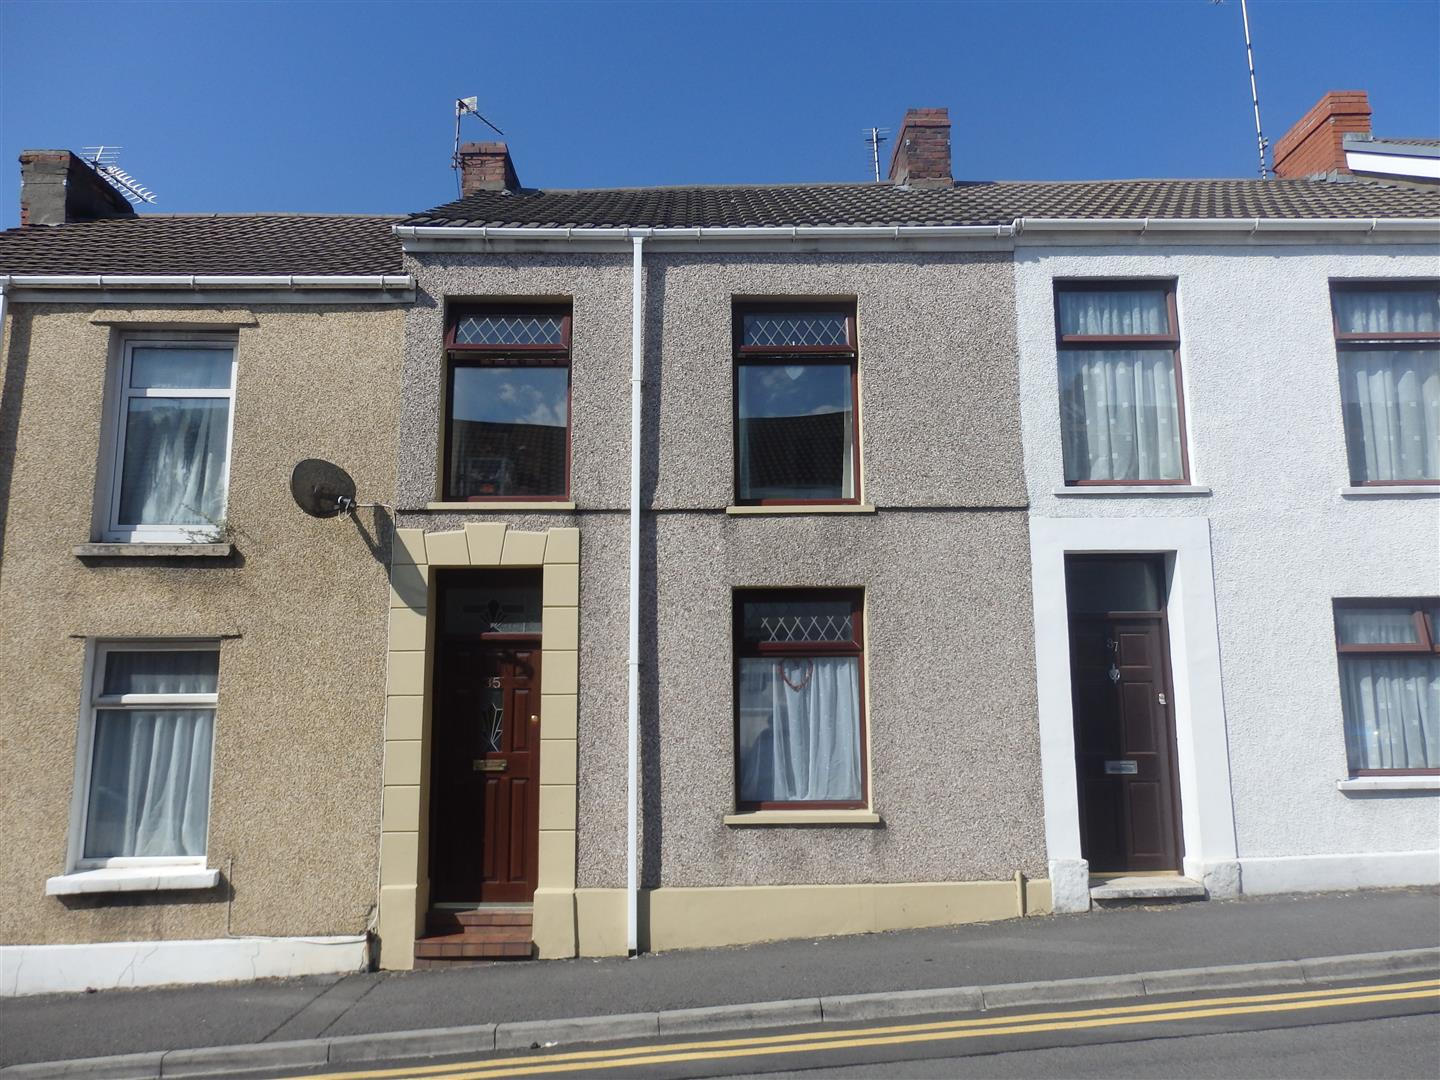 35 Marble Hall Road, Llanelli, Carmarthenshire